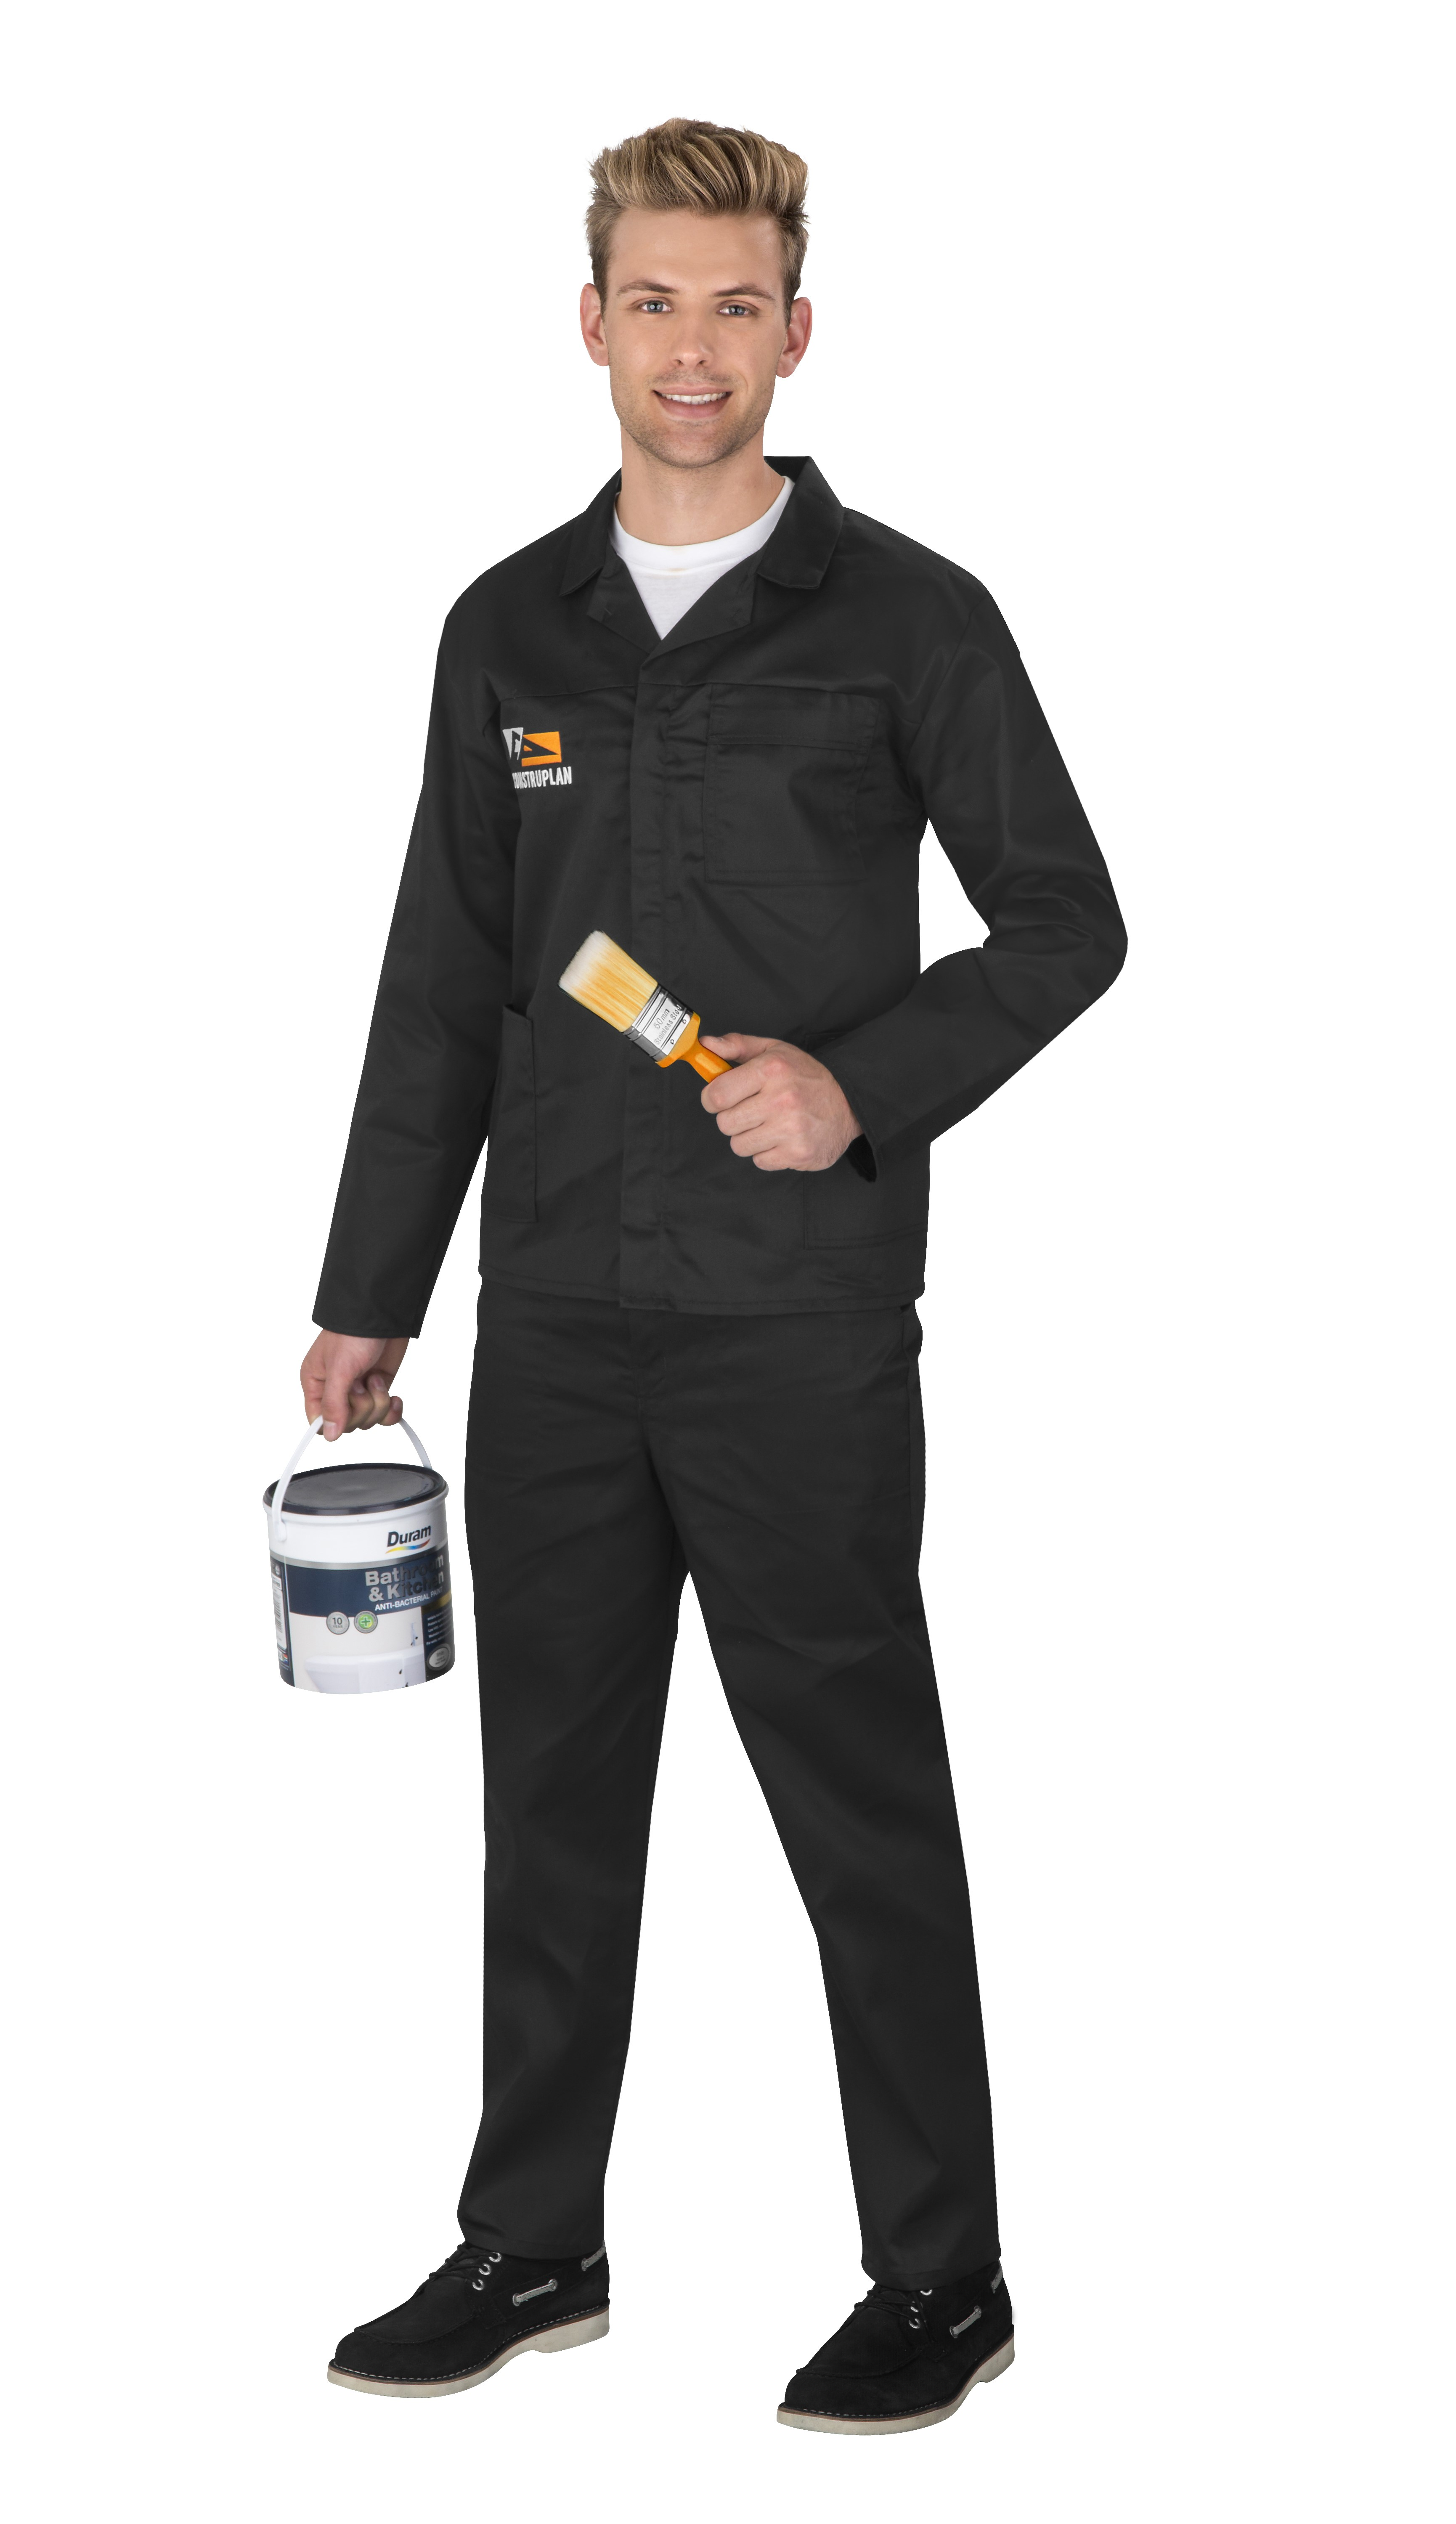 Conti Suits Supplier